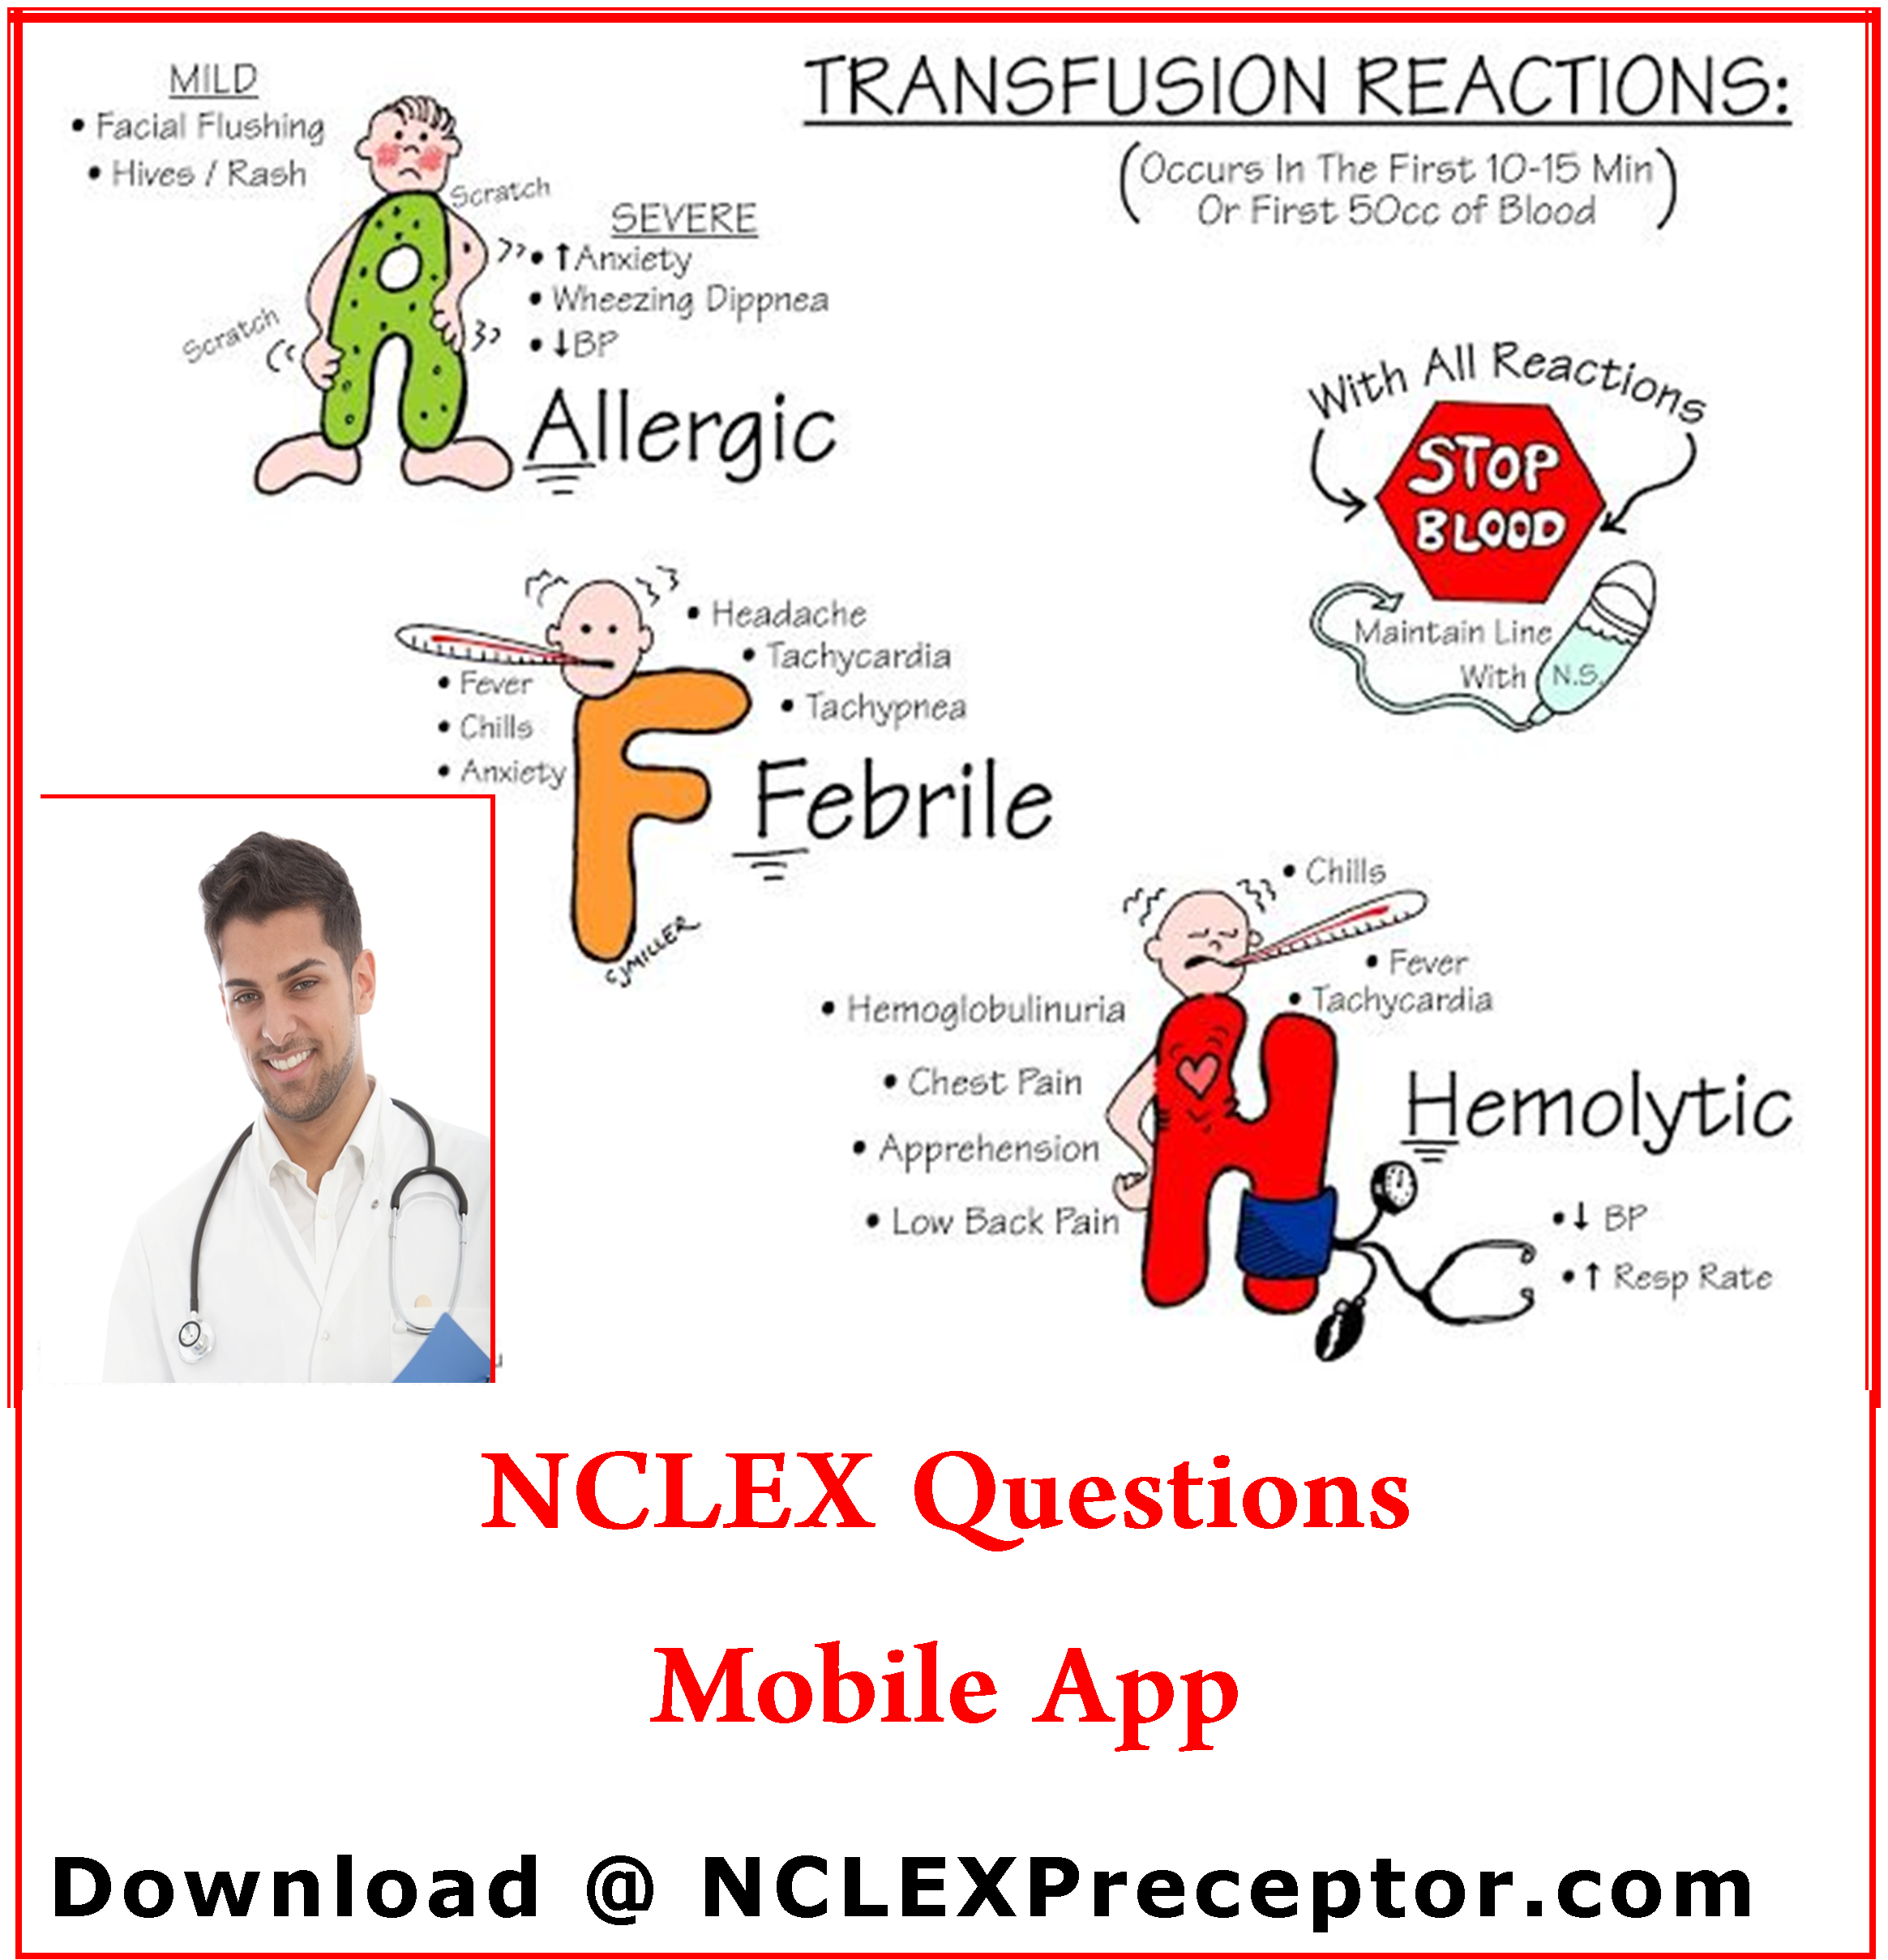 NCLEX Questions and test prep mobile app to help RN pass